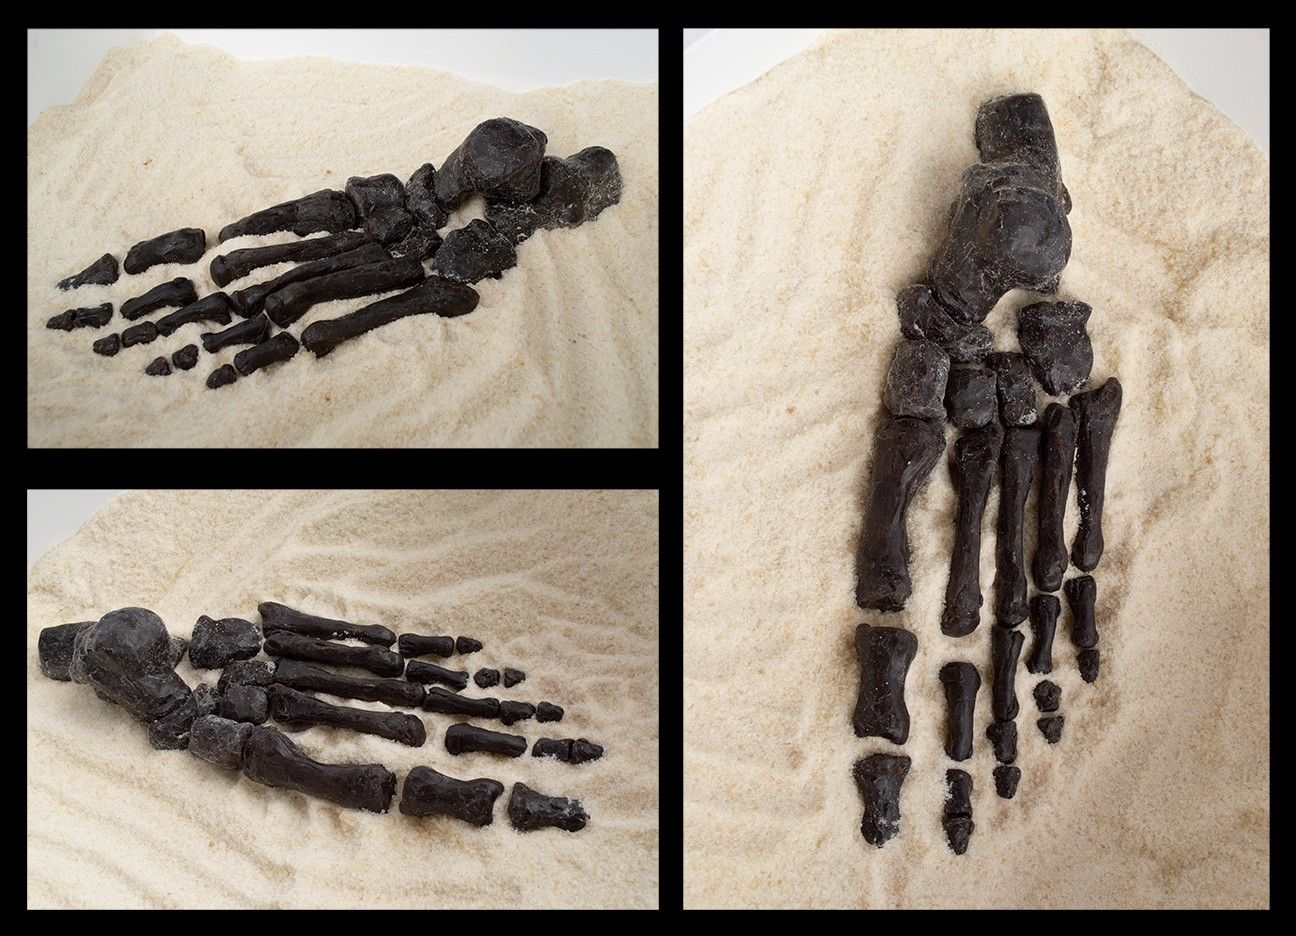 A photograph shows a hand-sculpted skeletal foot which includes the tarsals, metatarsals, calcaneus, and phalanges all partially buried in the sand. Another photograph shows a hand-sculpted tibia and fibula, also known as your shin bones.